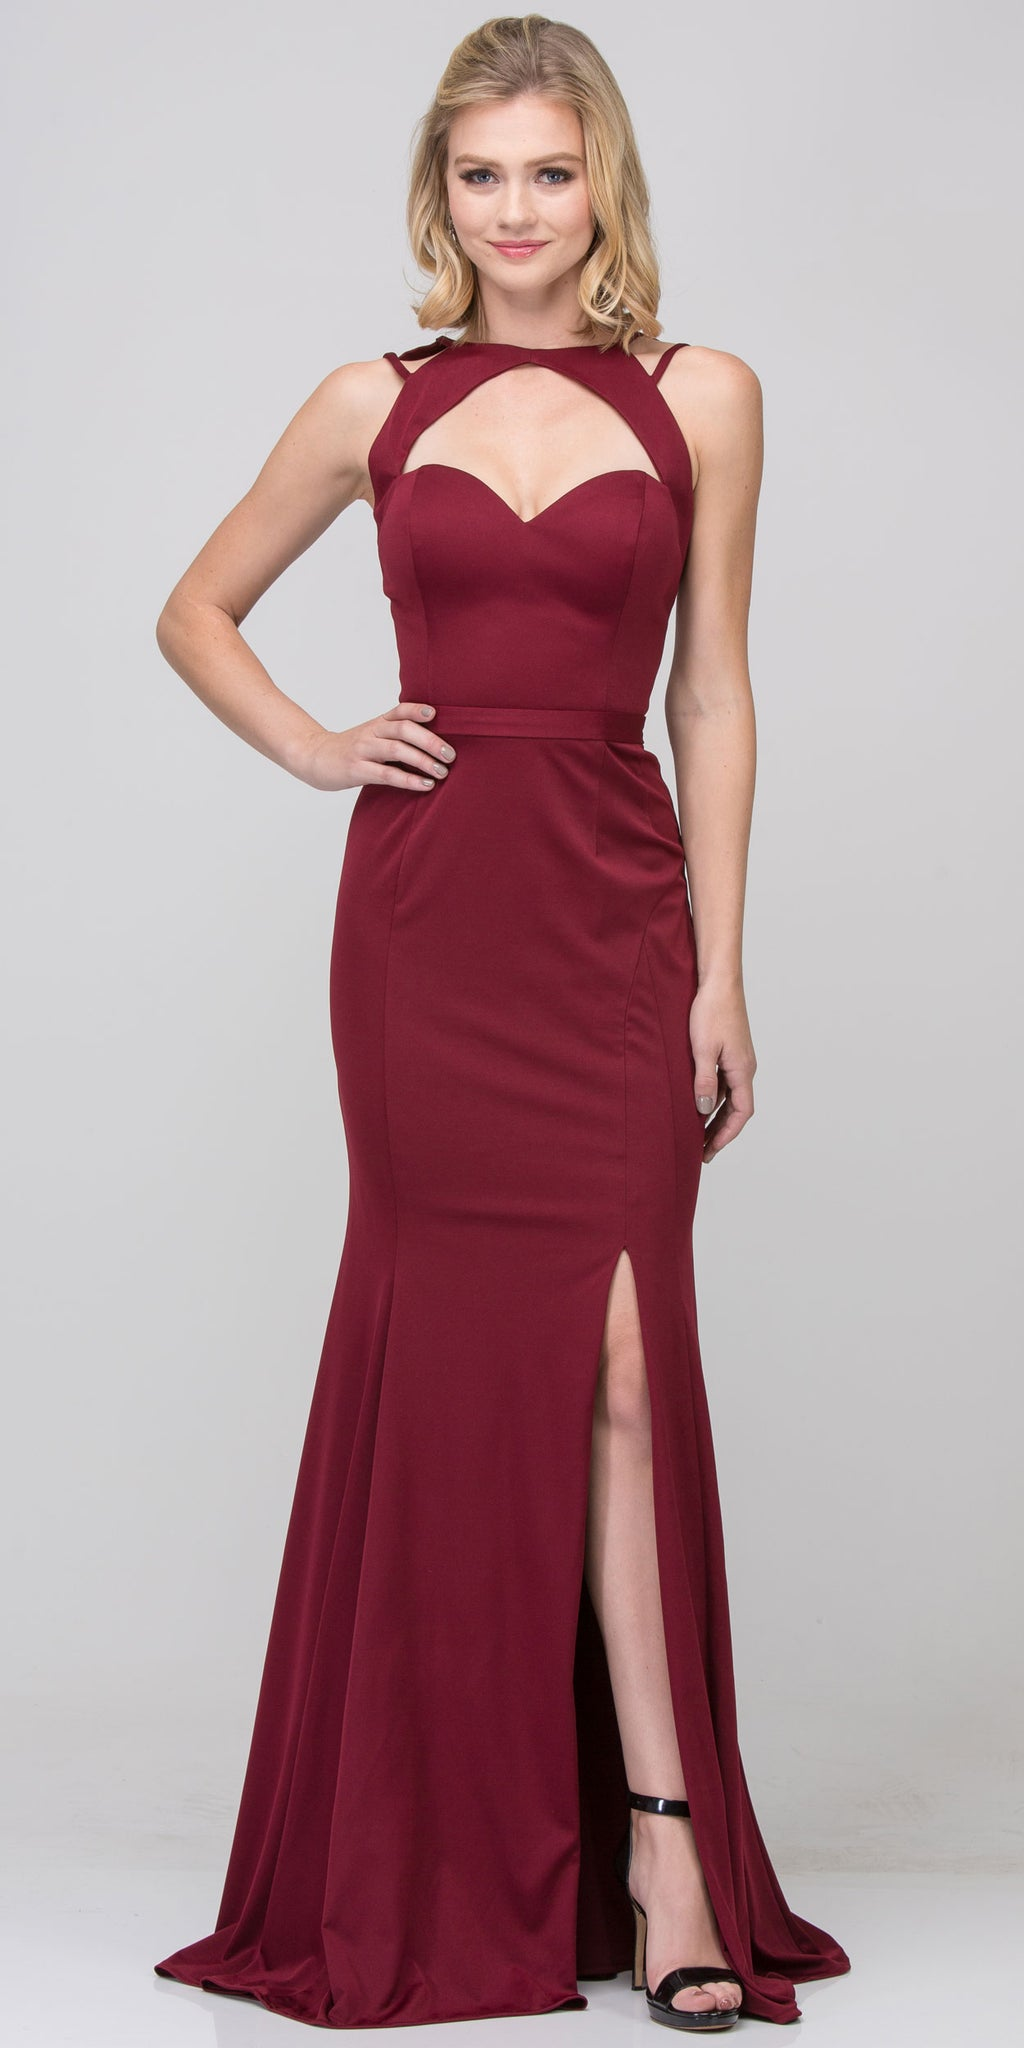 Main image of Cutout Sweetheart Neckline Long Fitted Formal Prom Dress